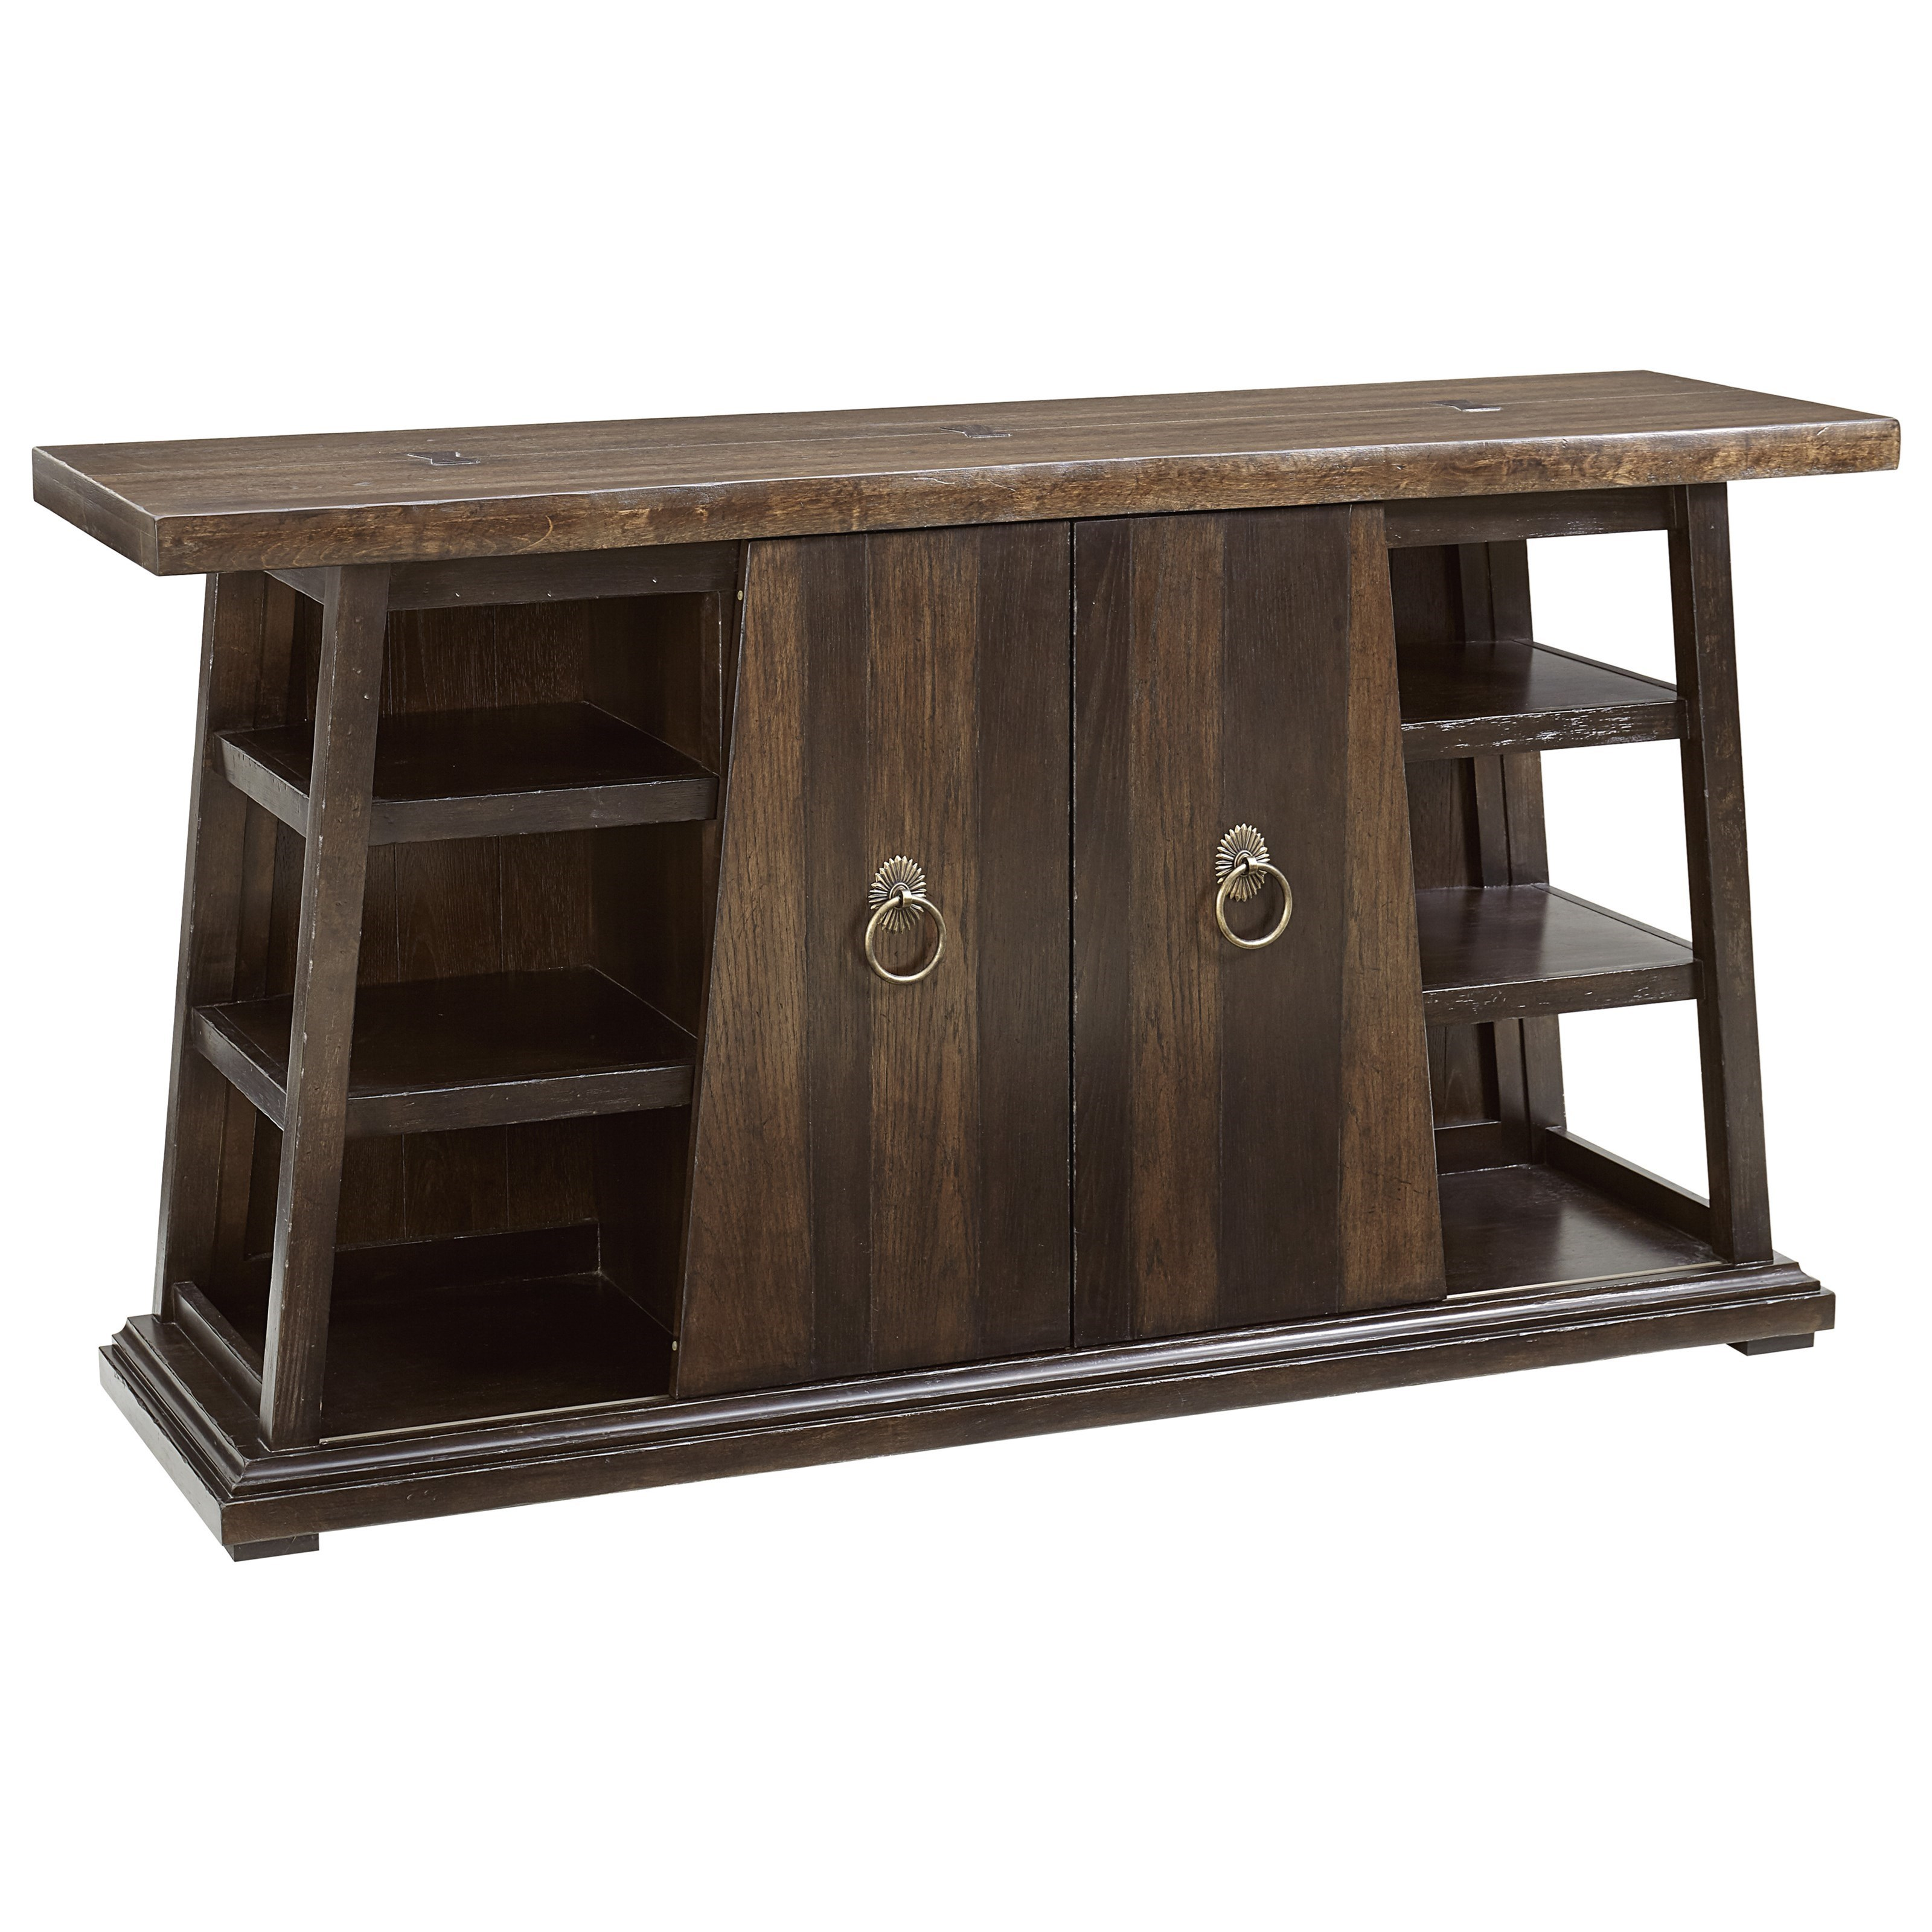 American Chapter Live-Edge Buffet Server by A.R.T. Furniture Inc at Home Collections Furniture